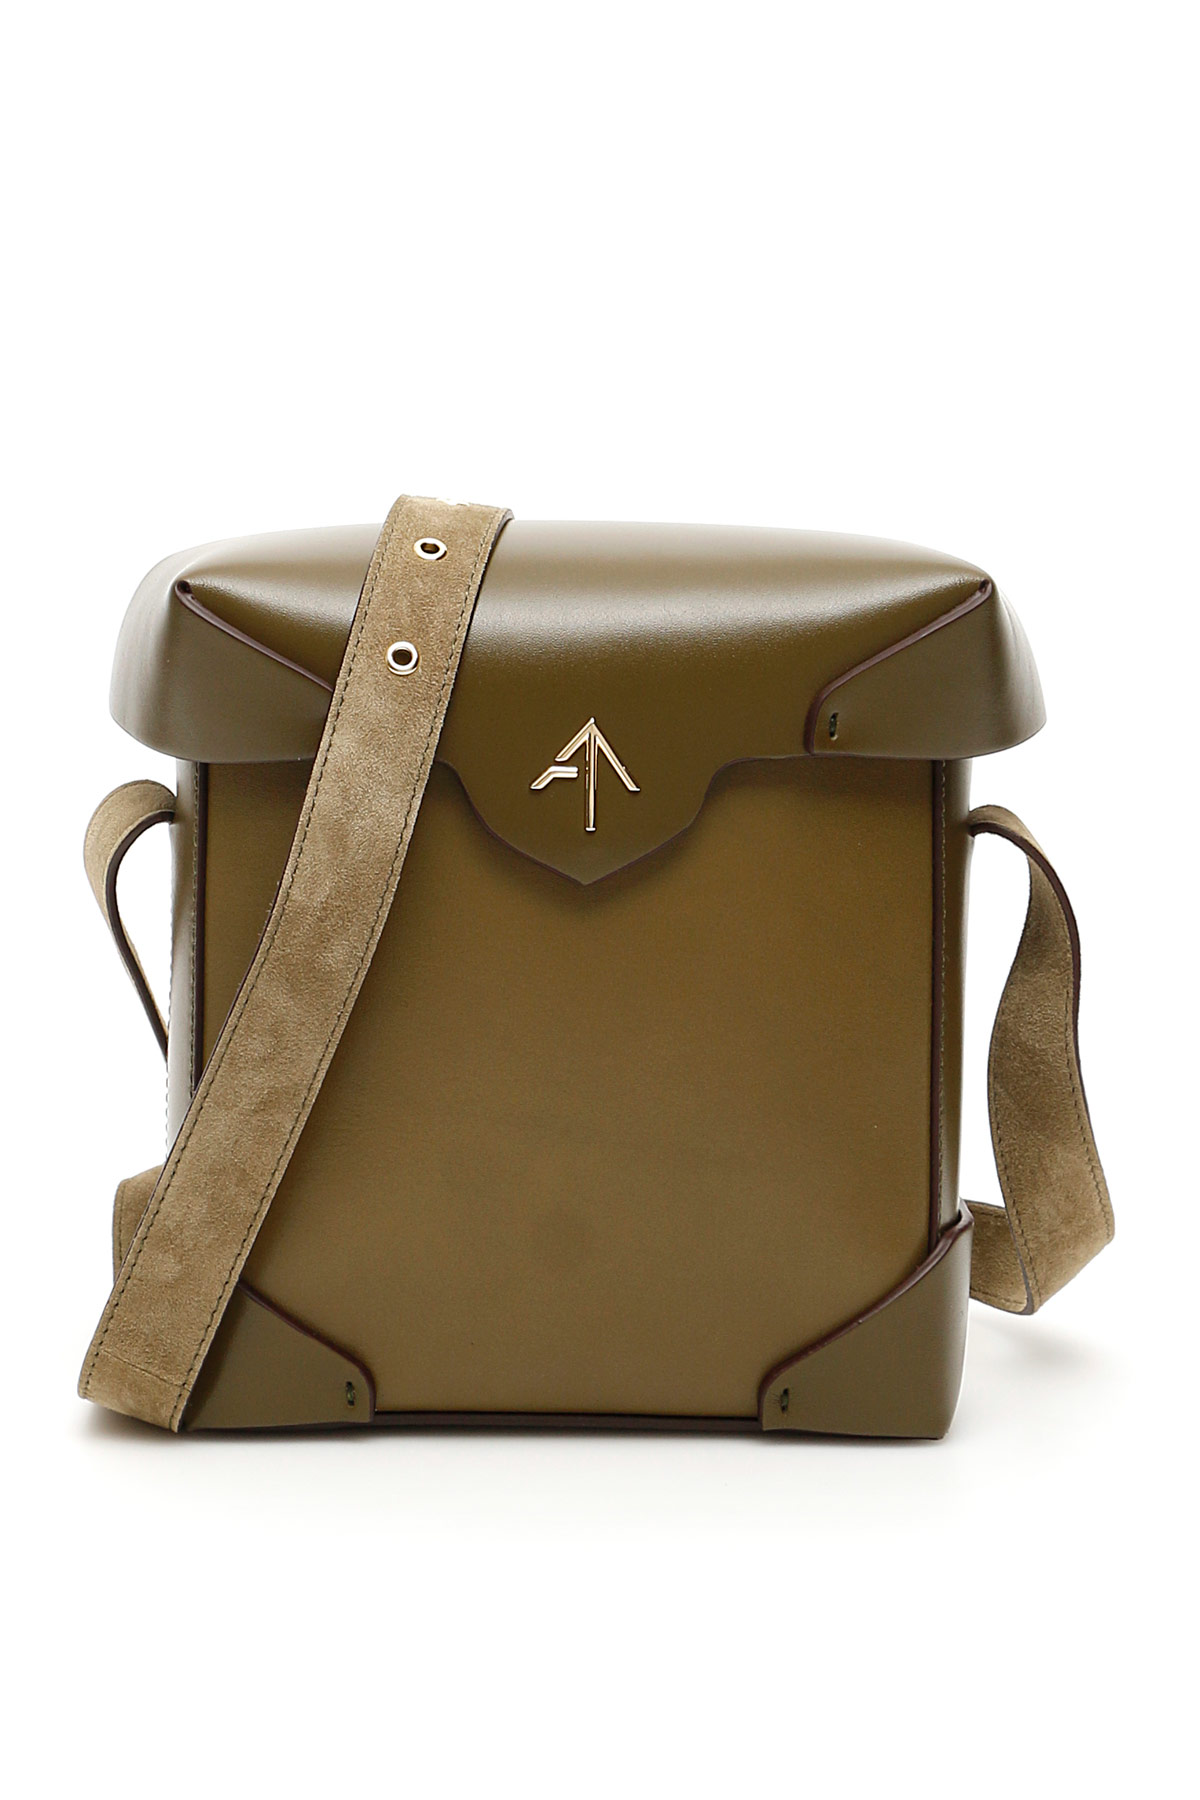 MANU ATELIER MINI PRISTINE BAG OS Green, Khaki Leather